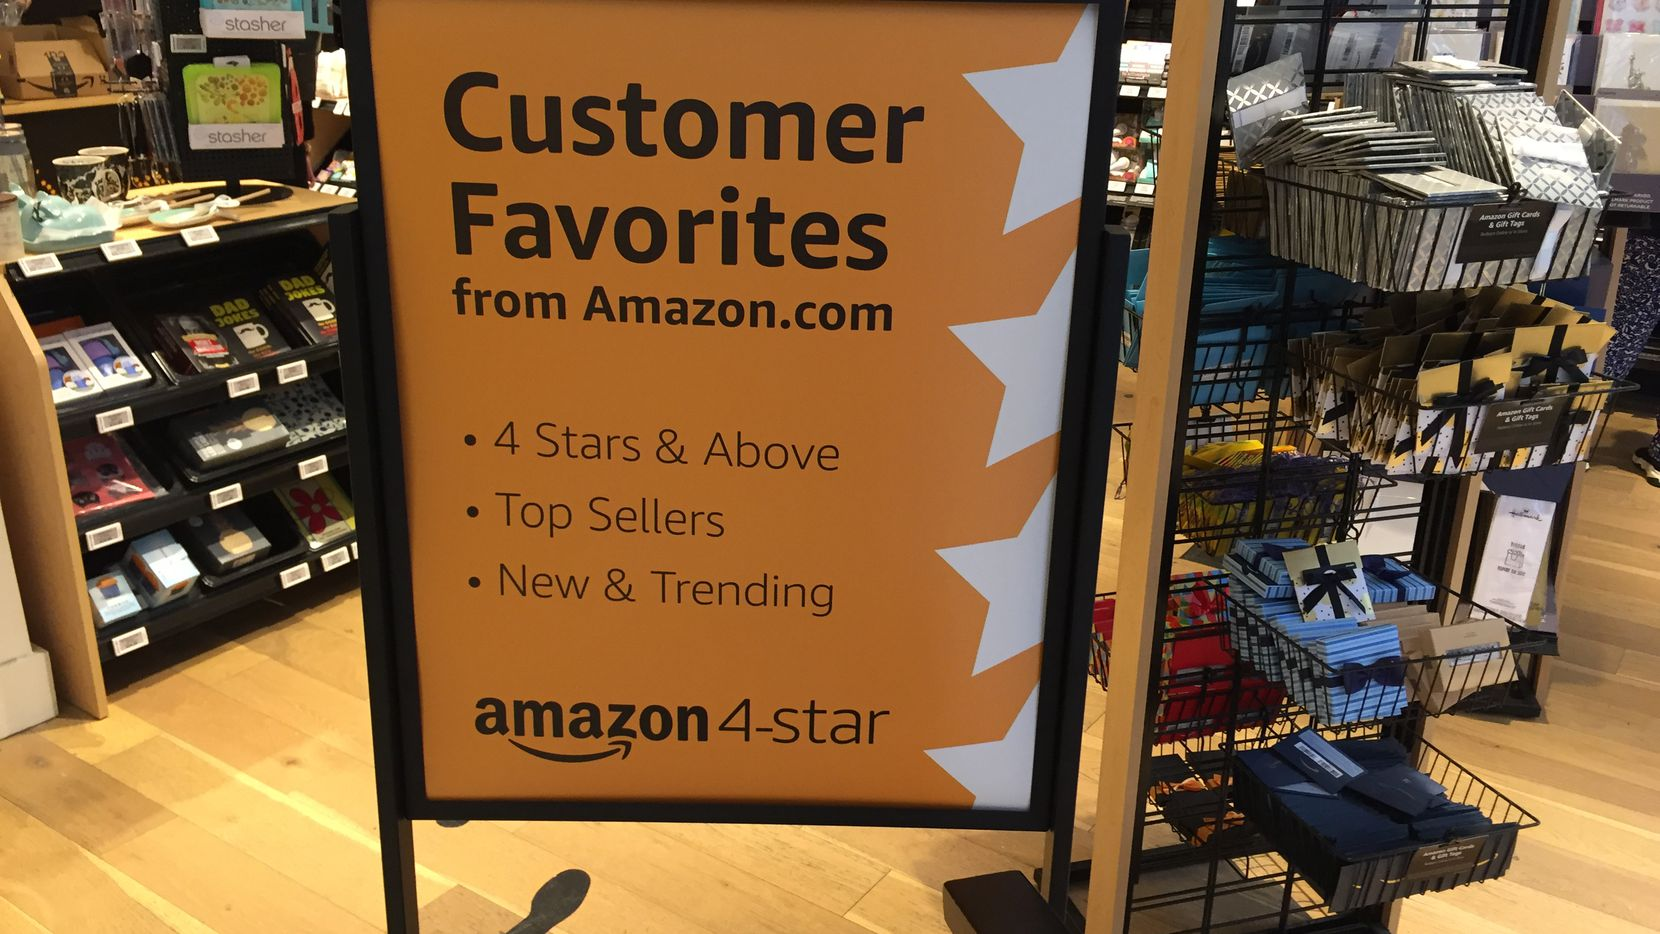 Amazon 4-Star store at 72 Spring St. in New York.